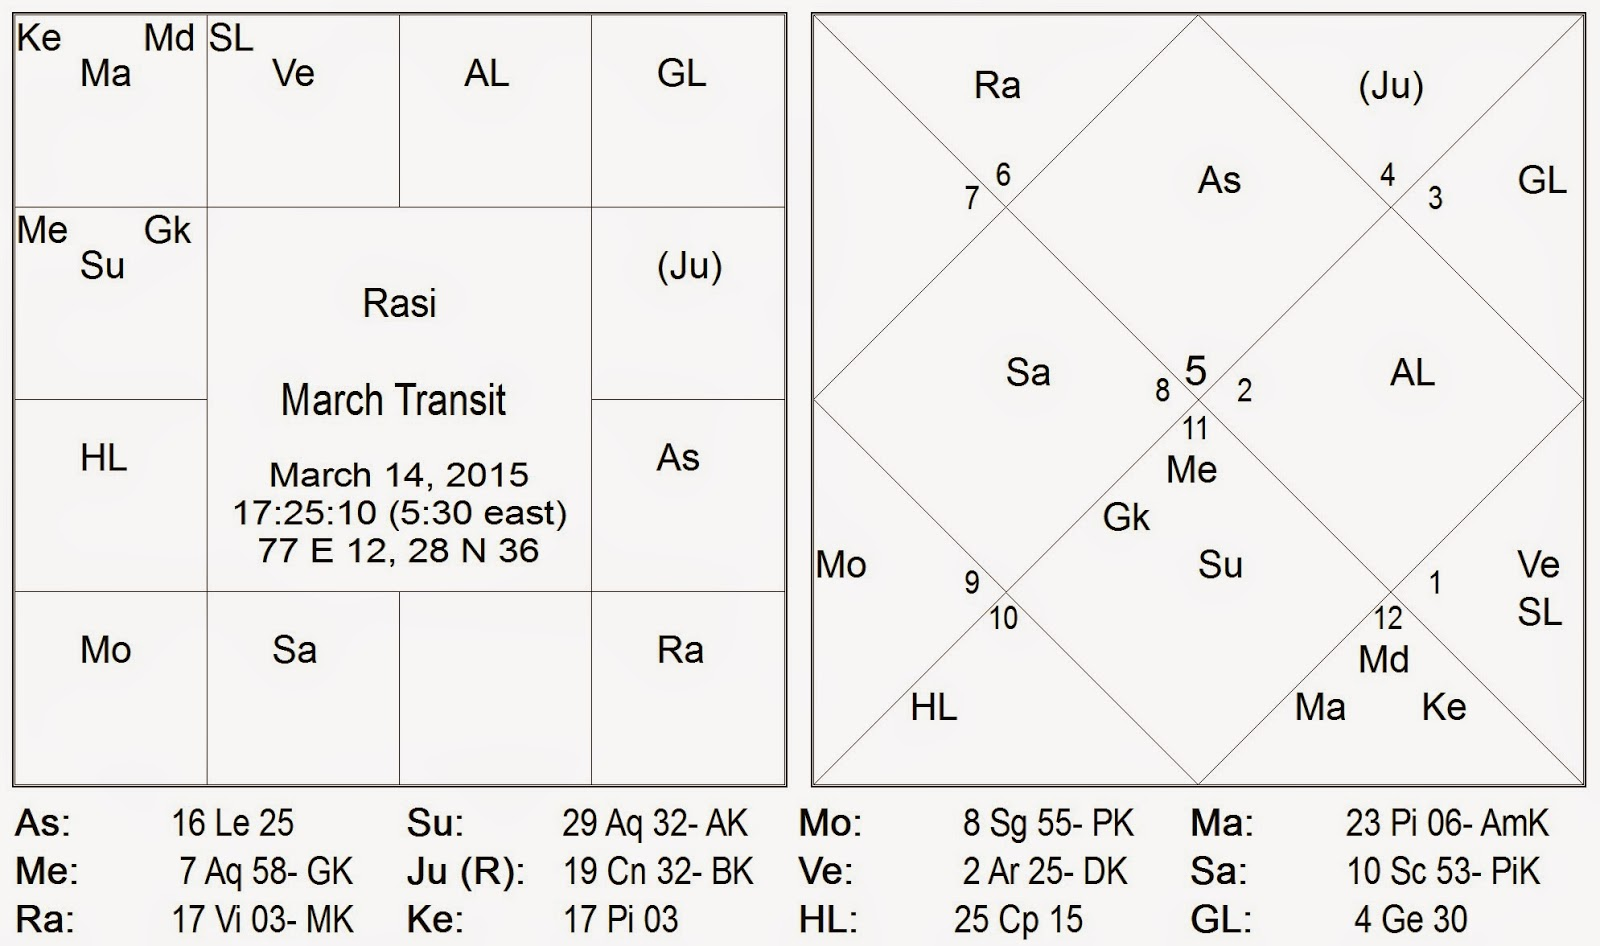 Tony robbins birth chart images free any chart examples tony robbins birth chart images free any chart examples tony robbins birth chart images free any nvjuhfo Images